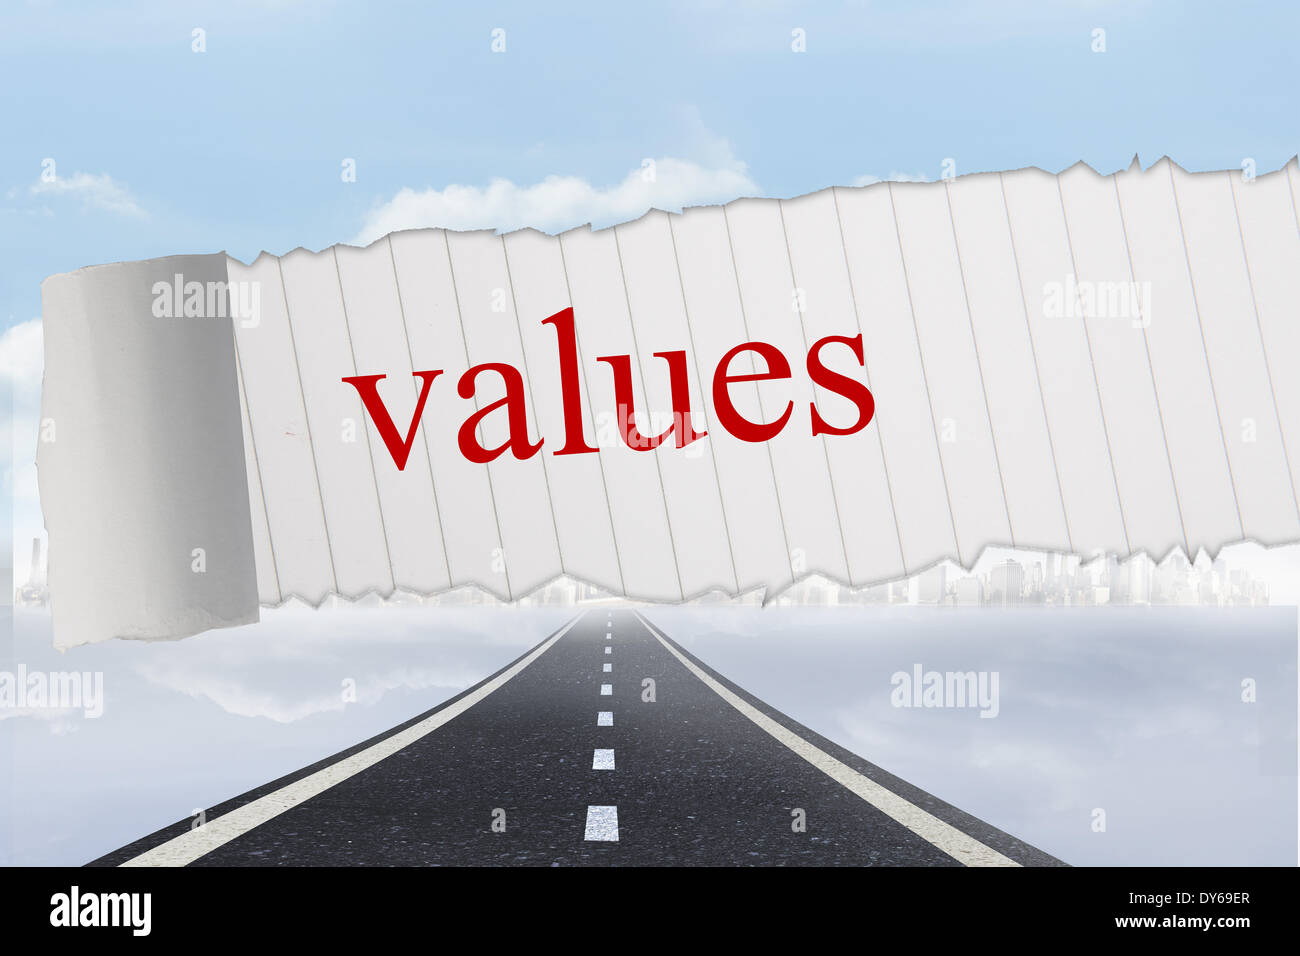 Values against open road background - Stock Image